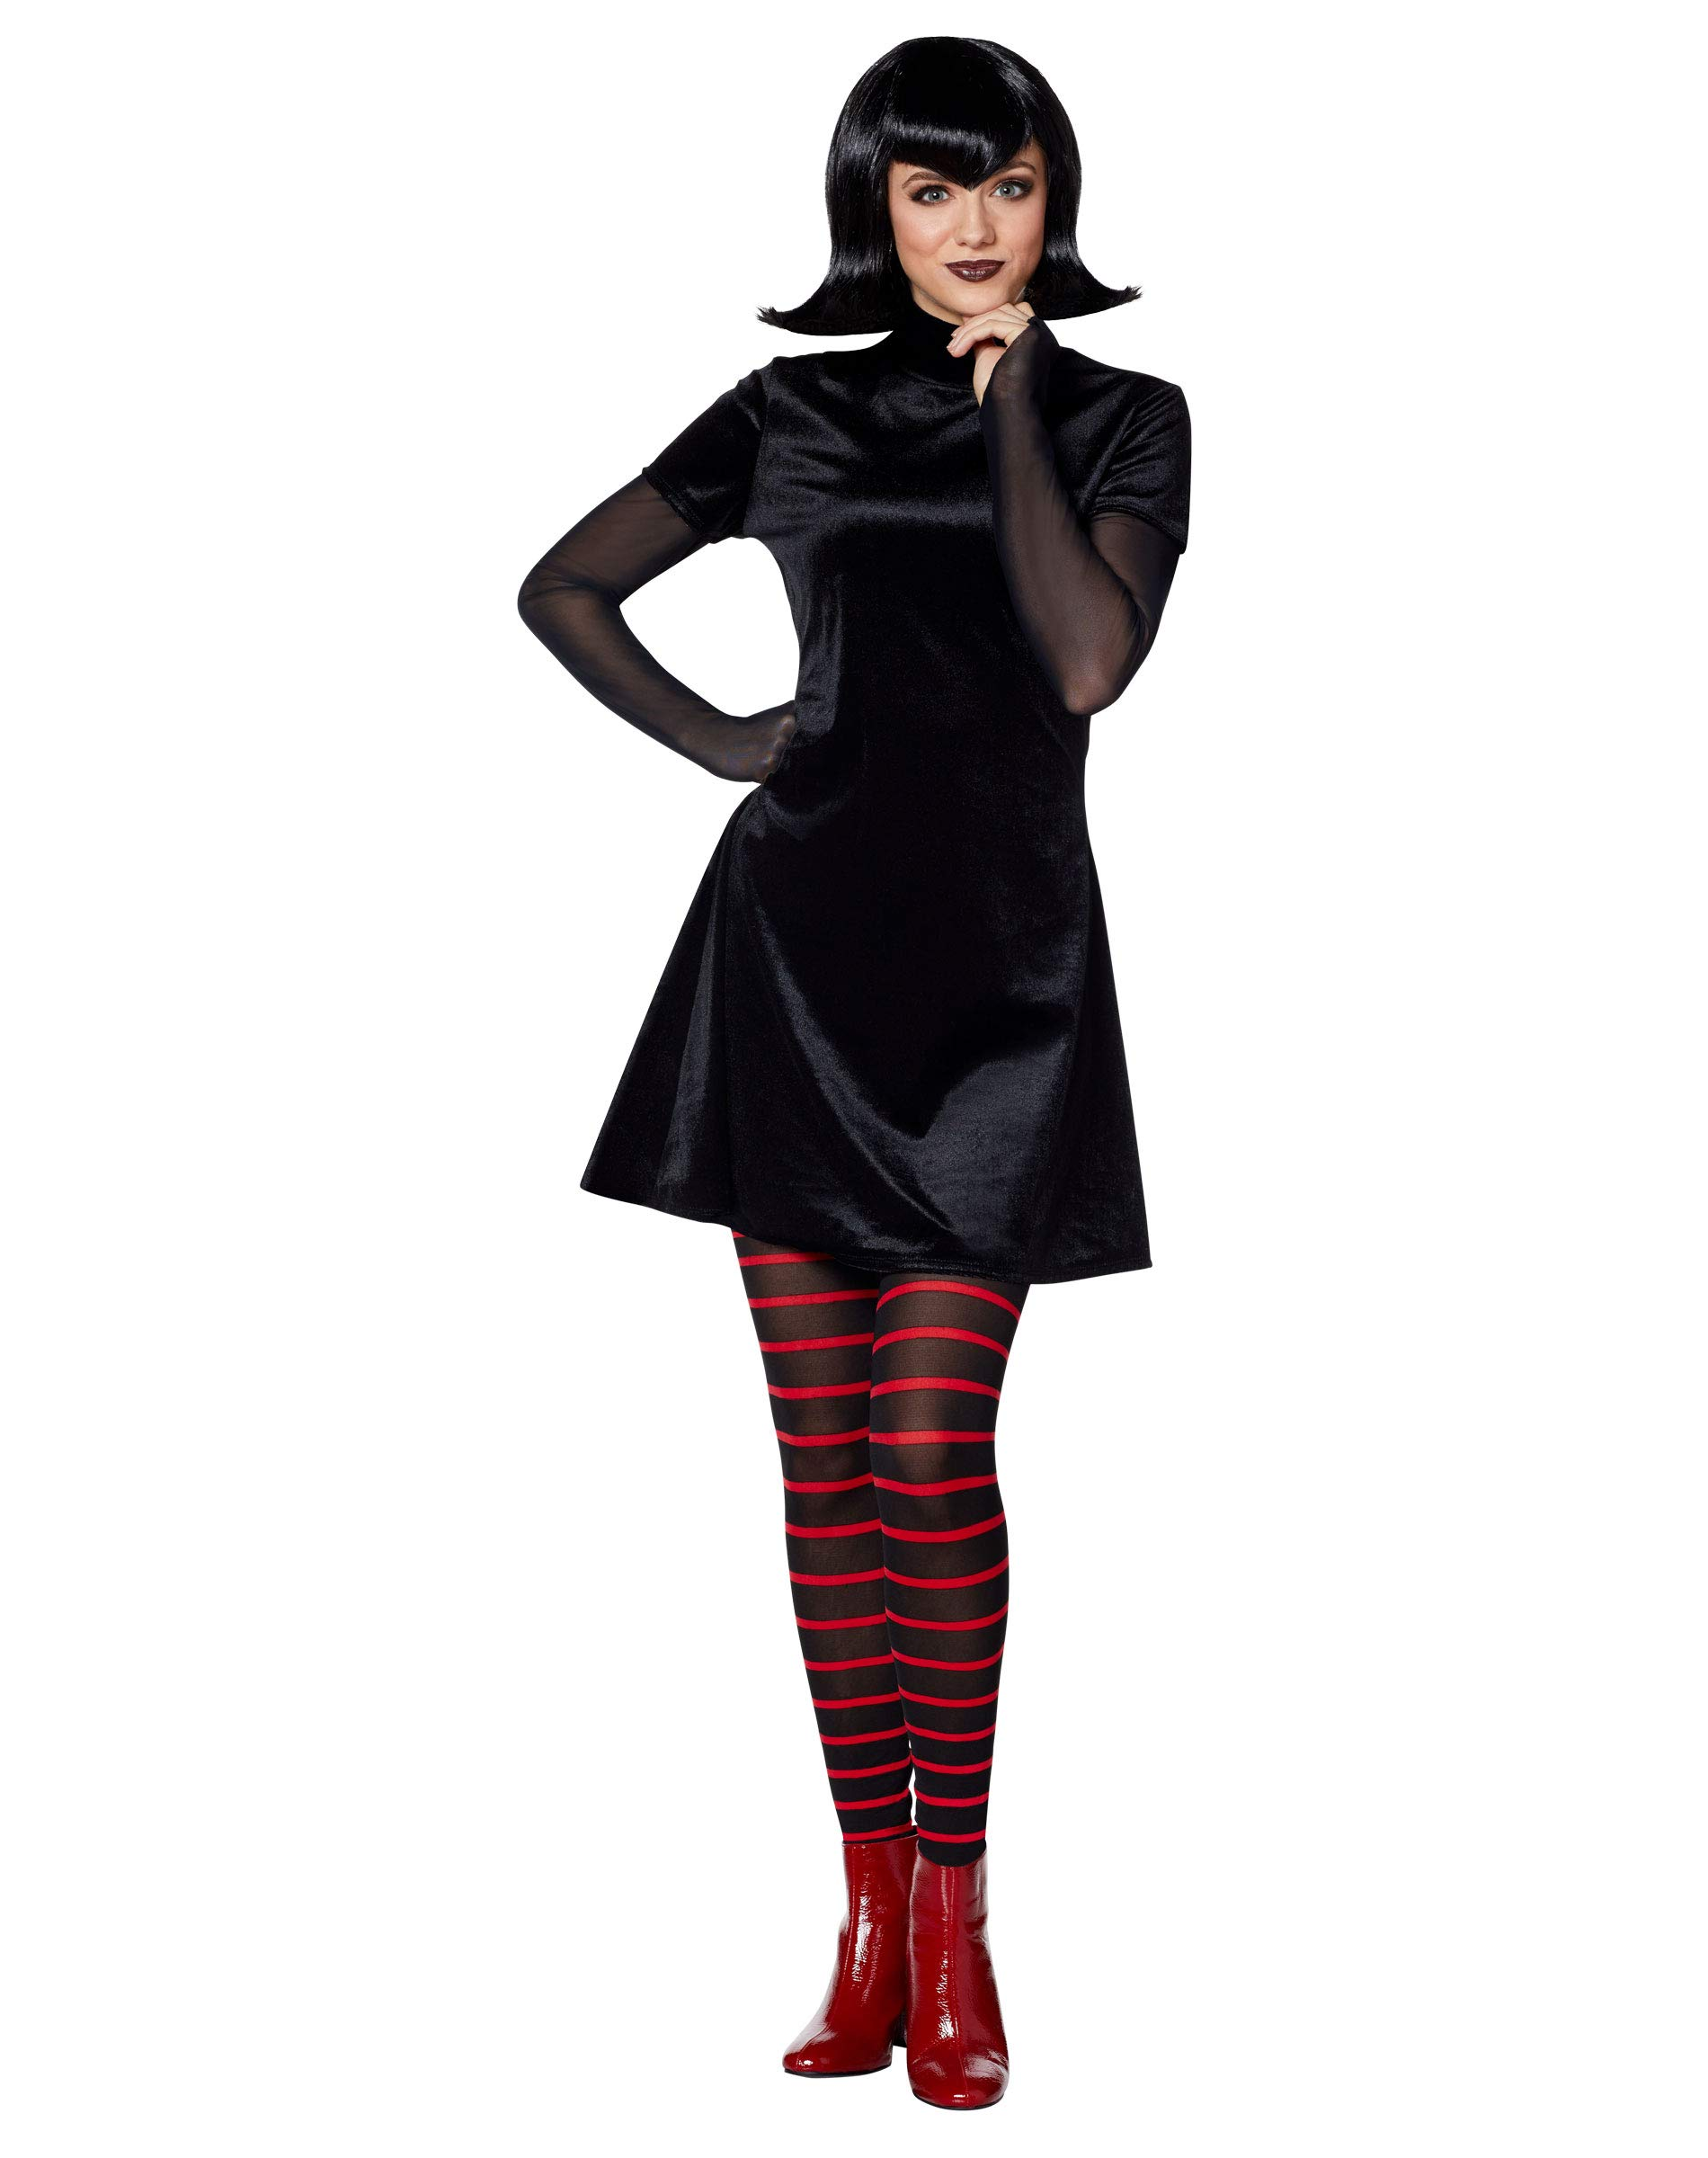 Spirit Halloween Adult Mavis Costume - Hotel Transylvania 3: Summer Vacation